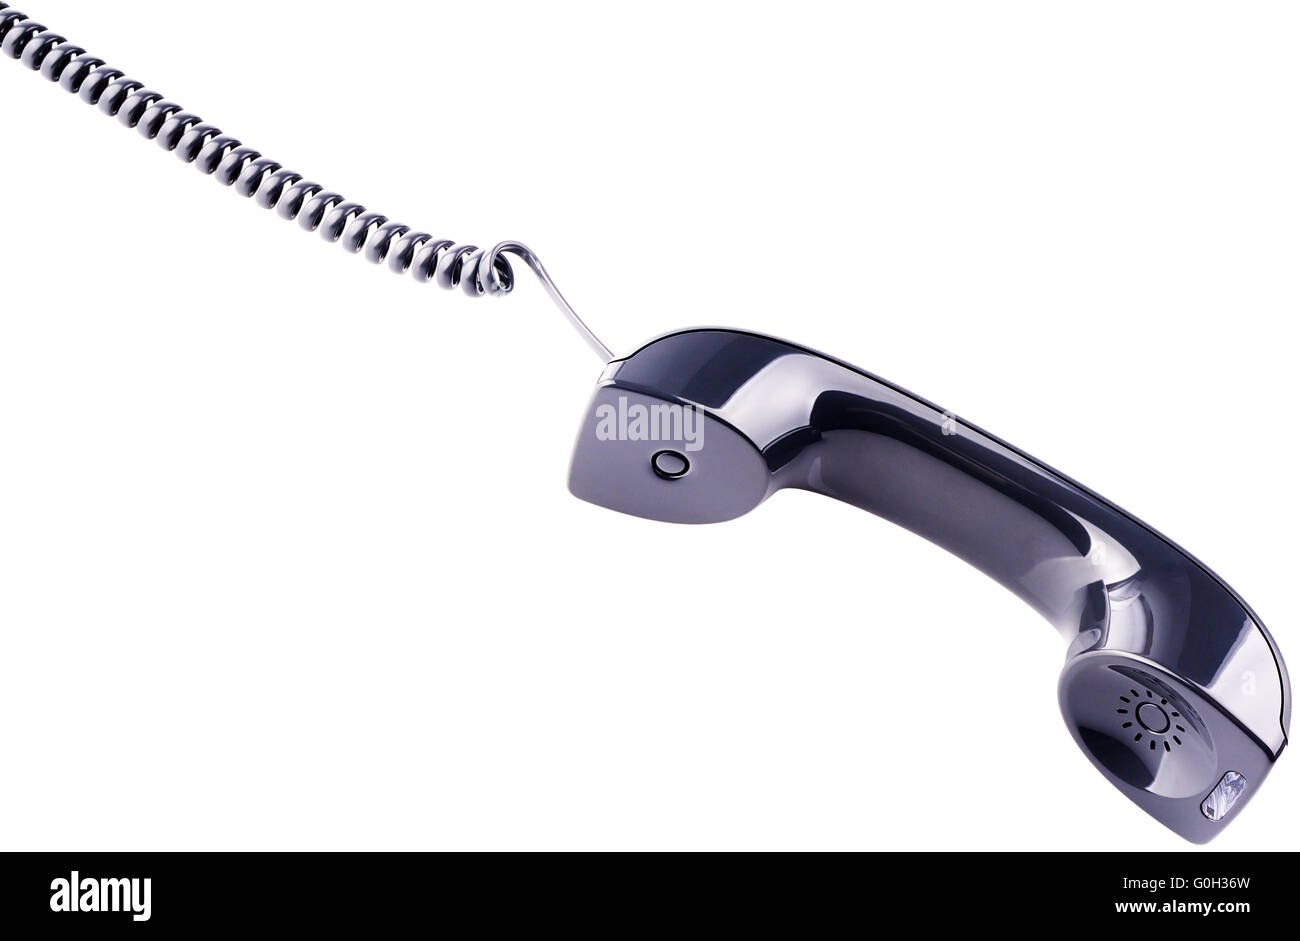 Phone handset with cord isolated on the white - Stock Image